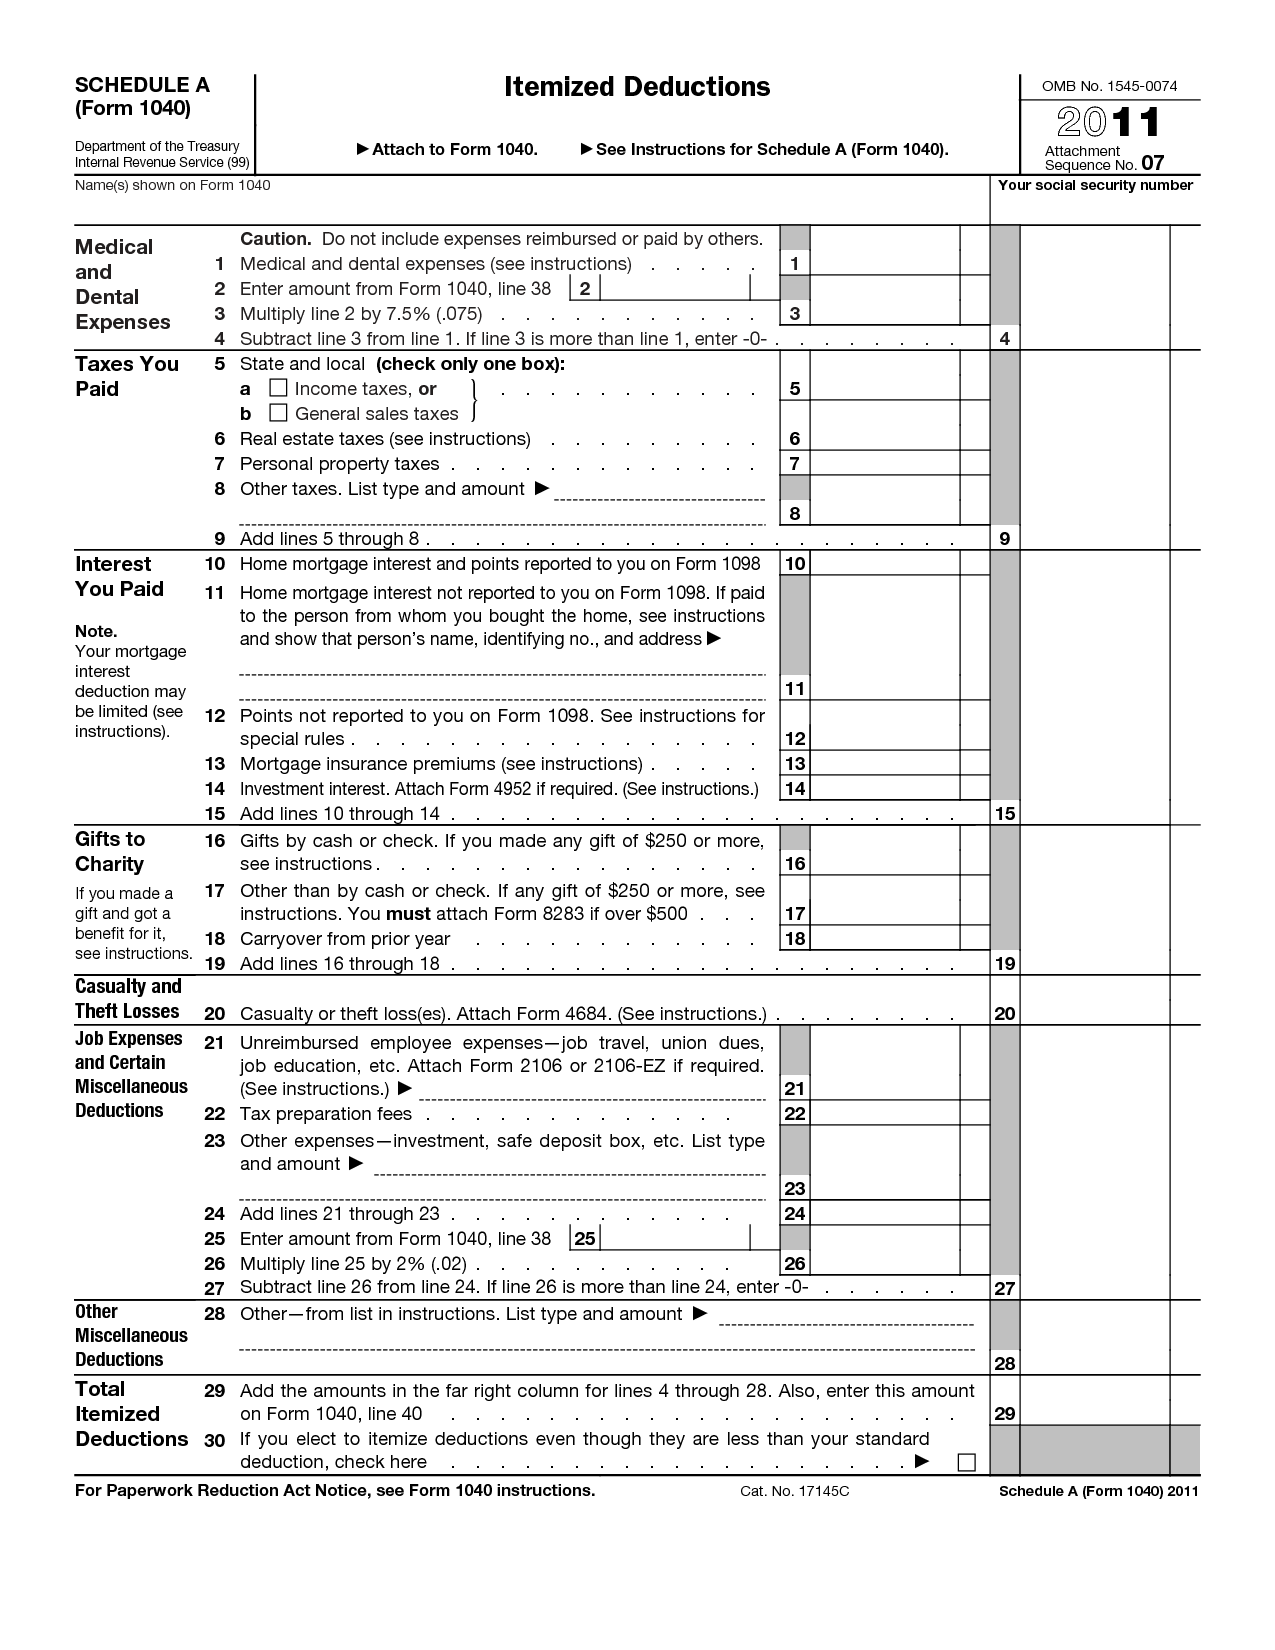 Irs Standard Deduction Worksheet Form